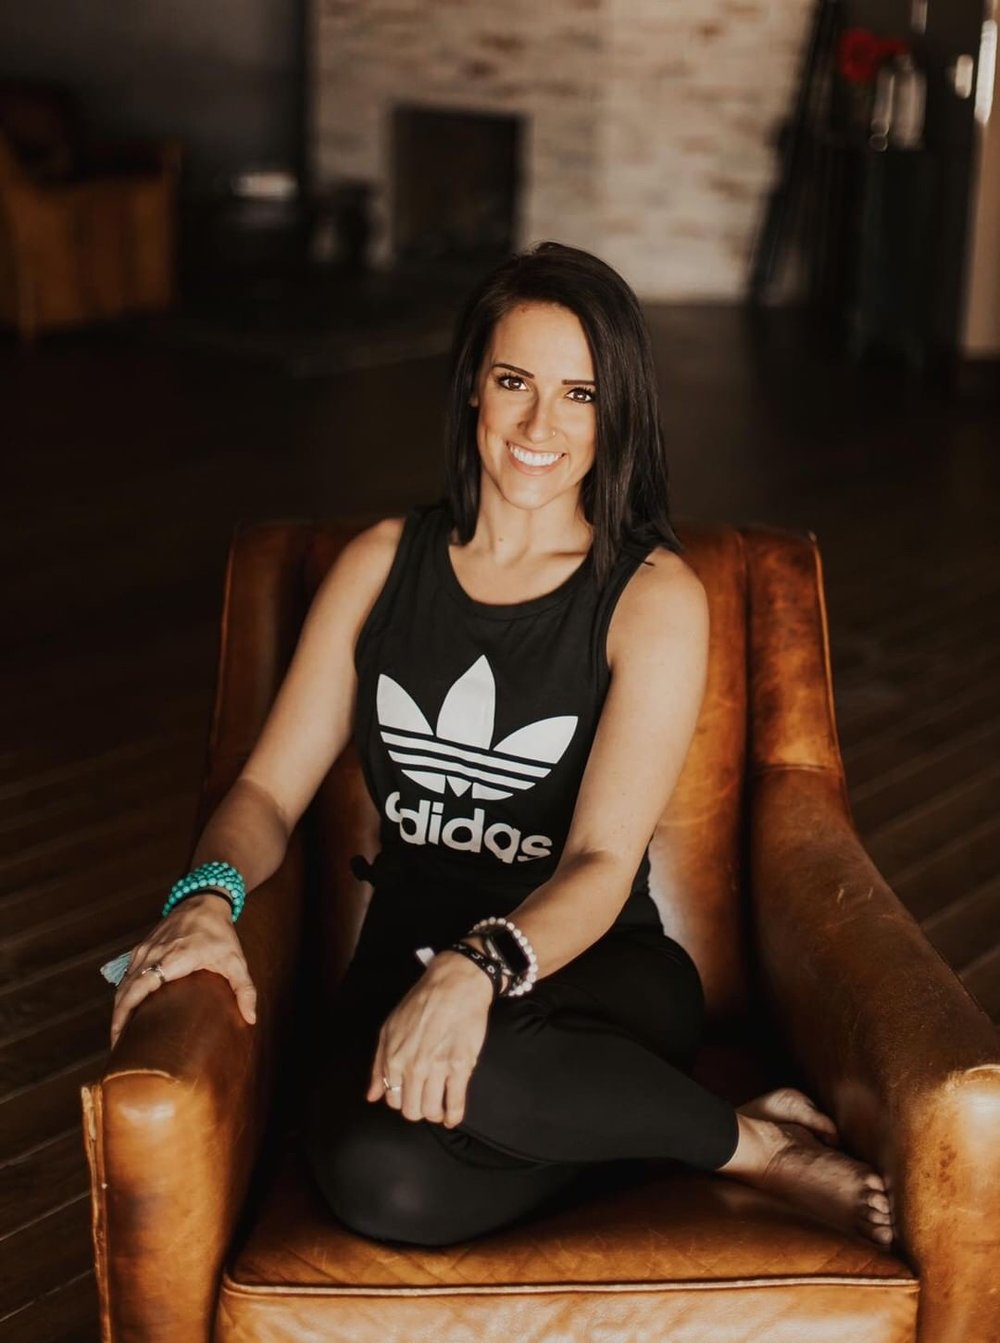 YOGA - LADIES: you're going to want to pencil this one in to your planners.Thursday; March 28th from 6:30-7:30PM yoga instructor Morgan Fisher will be offering a FREE power yoga class at tre Ministries.That is NOT A TYPO. The class will be free!!! (And a stinkin' boatloads of fun). This class is for ALL level yogis; beginners and advanced! WE WILL SEE YOU ON THE MAT, LADIES.(FYI: if you do not own a mat, Walmart and target sell them for cheap.) — with Morgan Fisher.